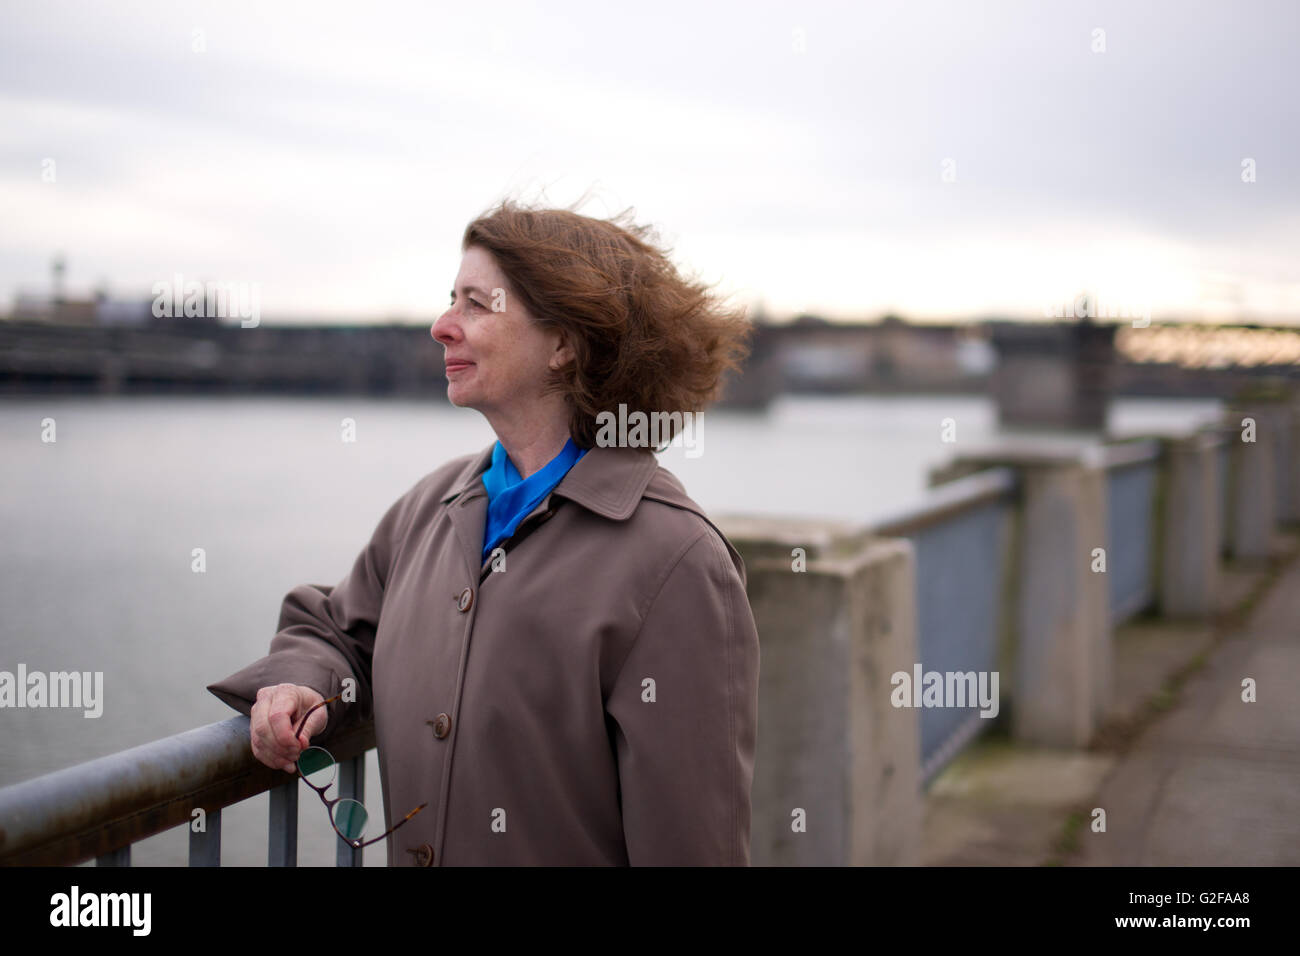 Mid-Adult Woman in Trench Coat Resting Arm on Railing While Looking Across River - Stock Image